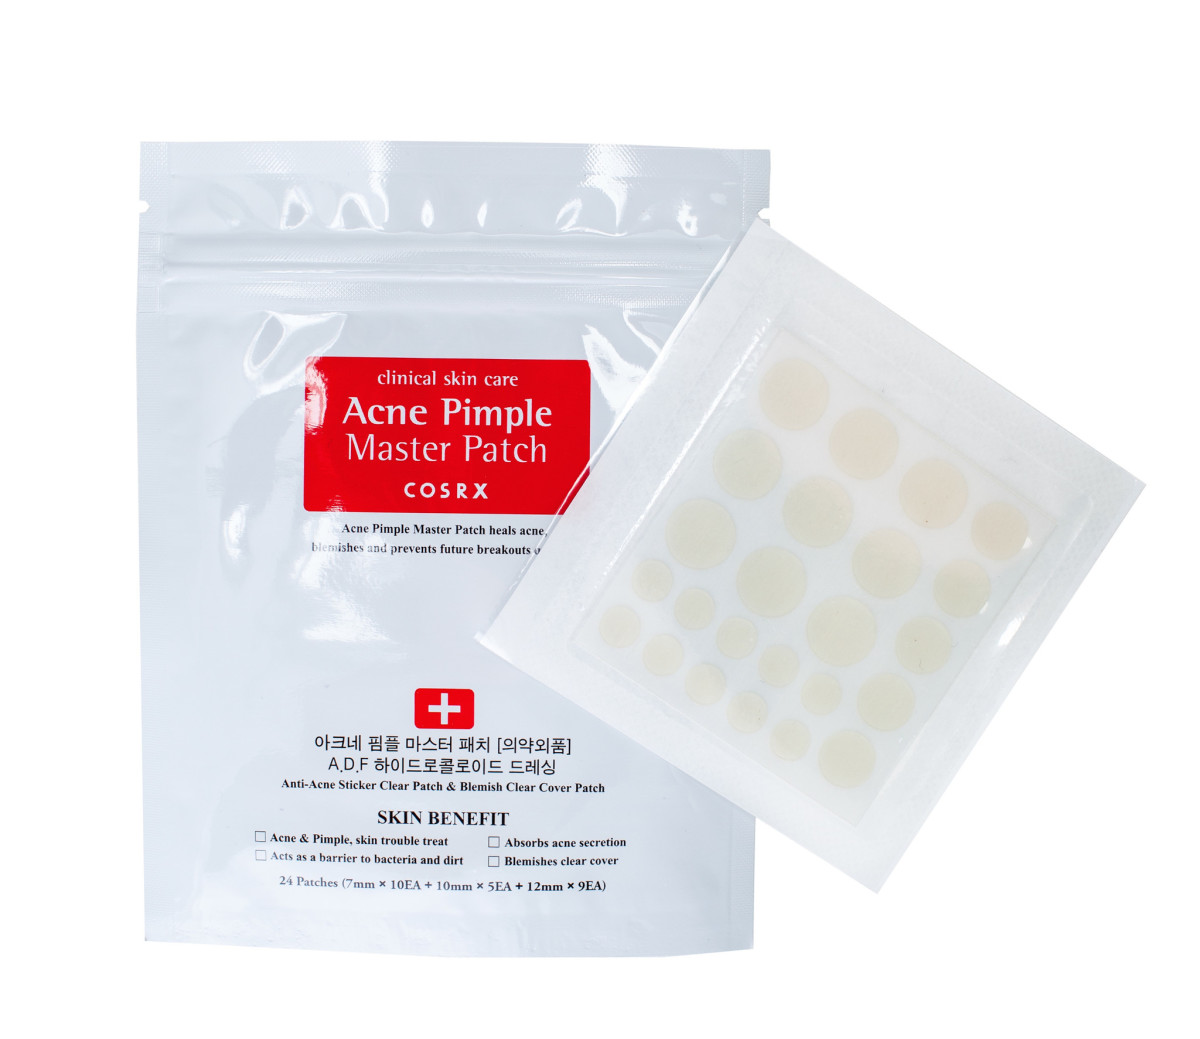 CosRx Acne Pimple Master, $5, available at Soko Glam. Photo: Courtesy of CosRx